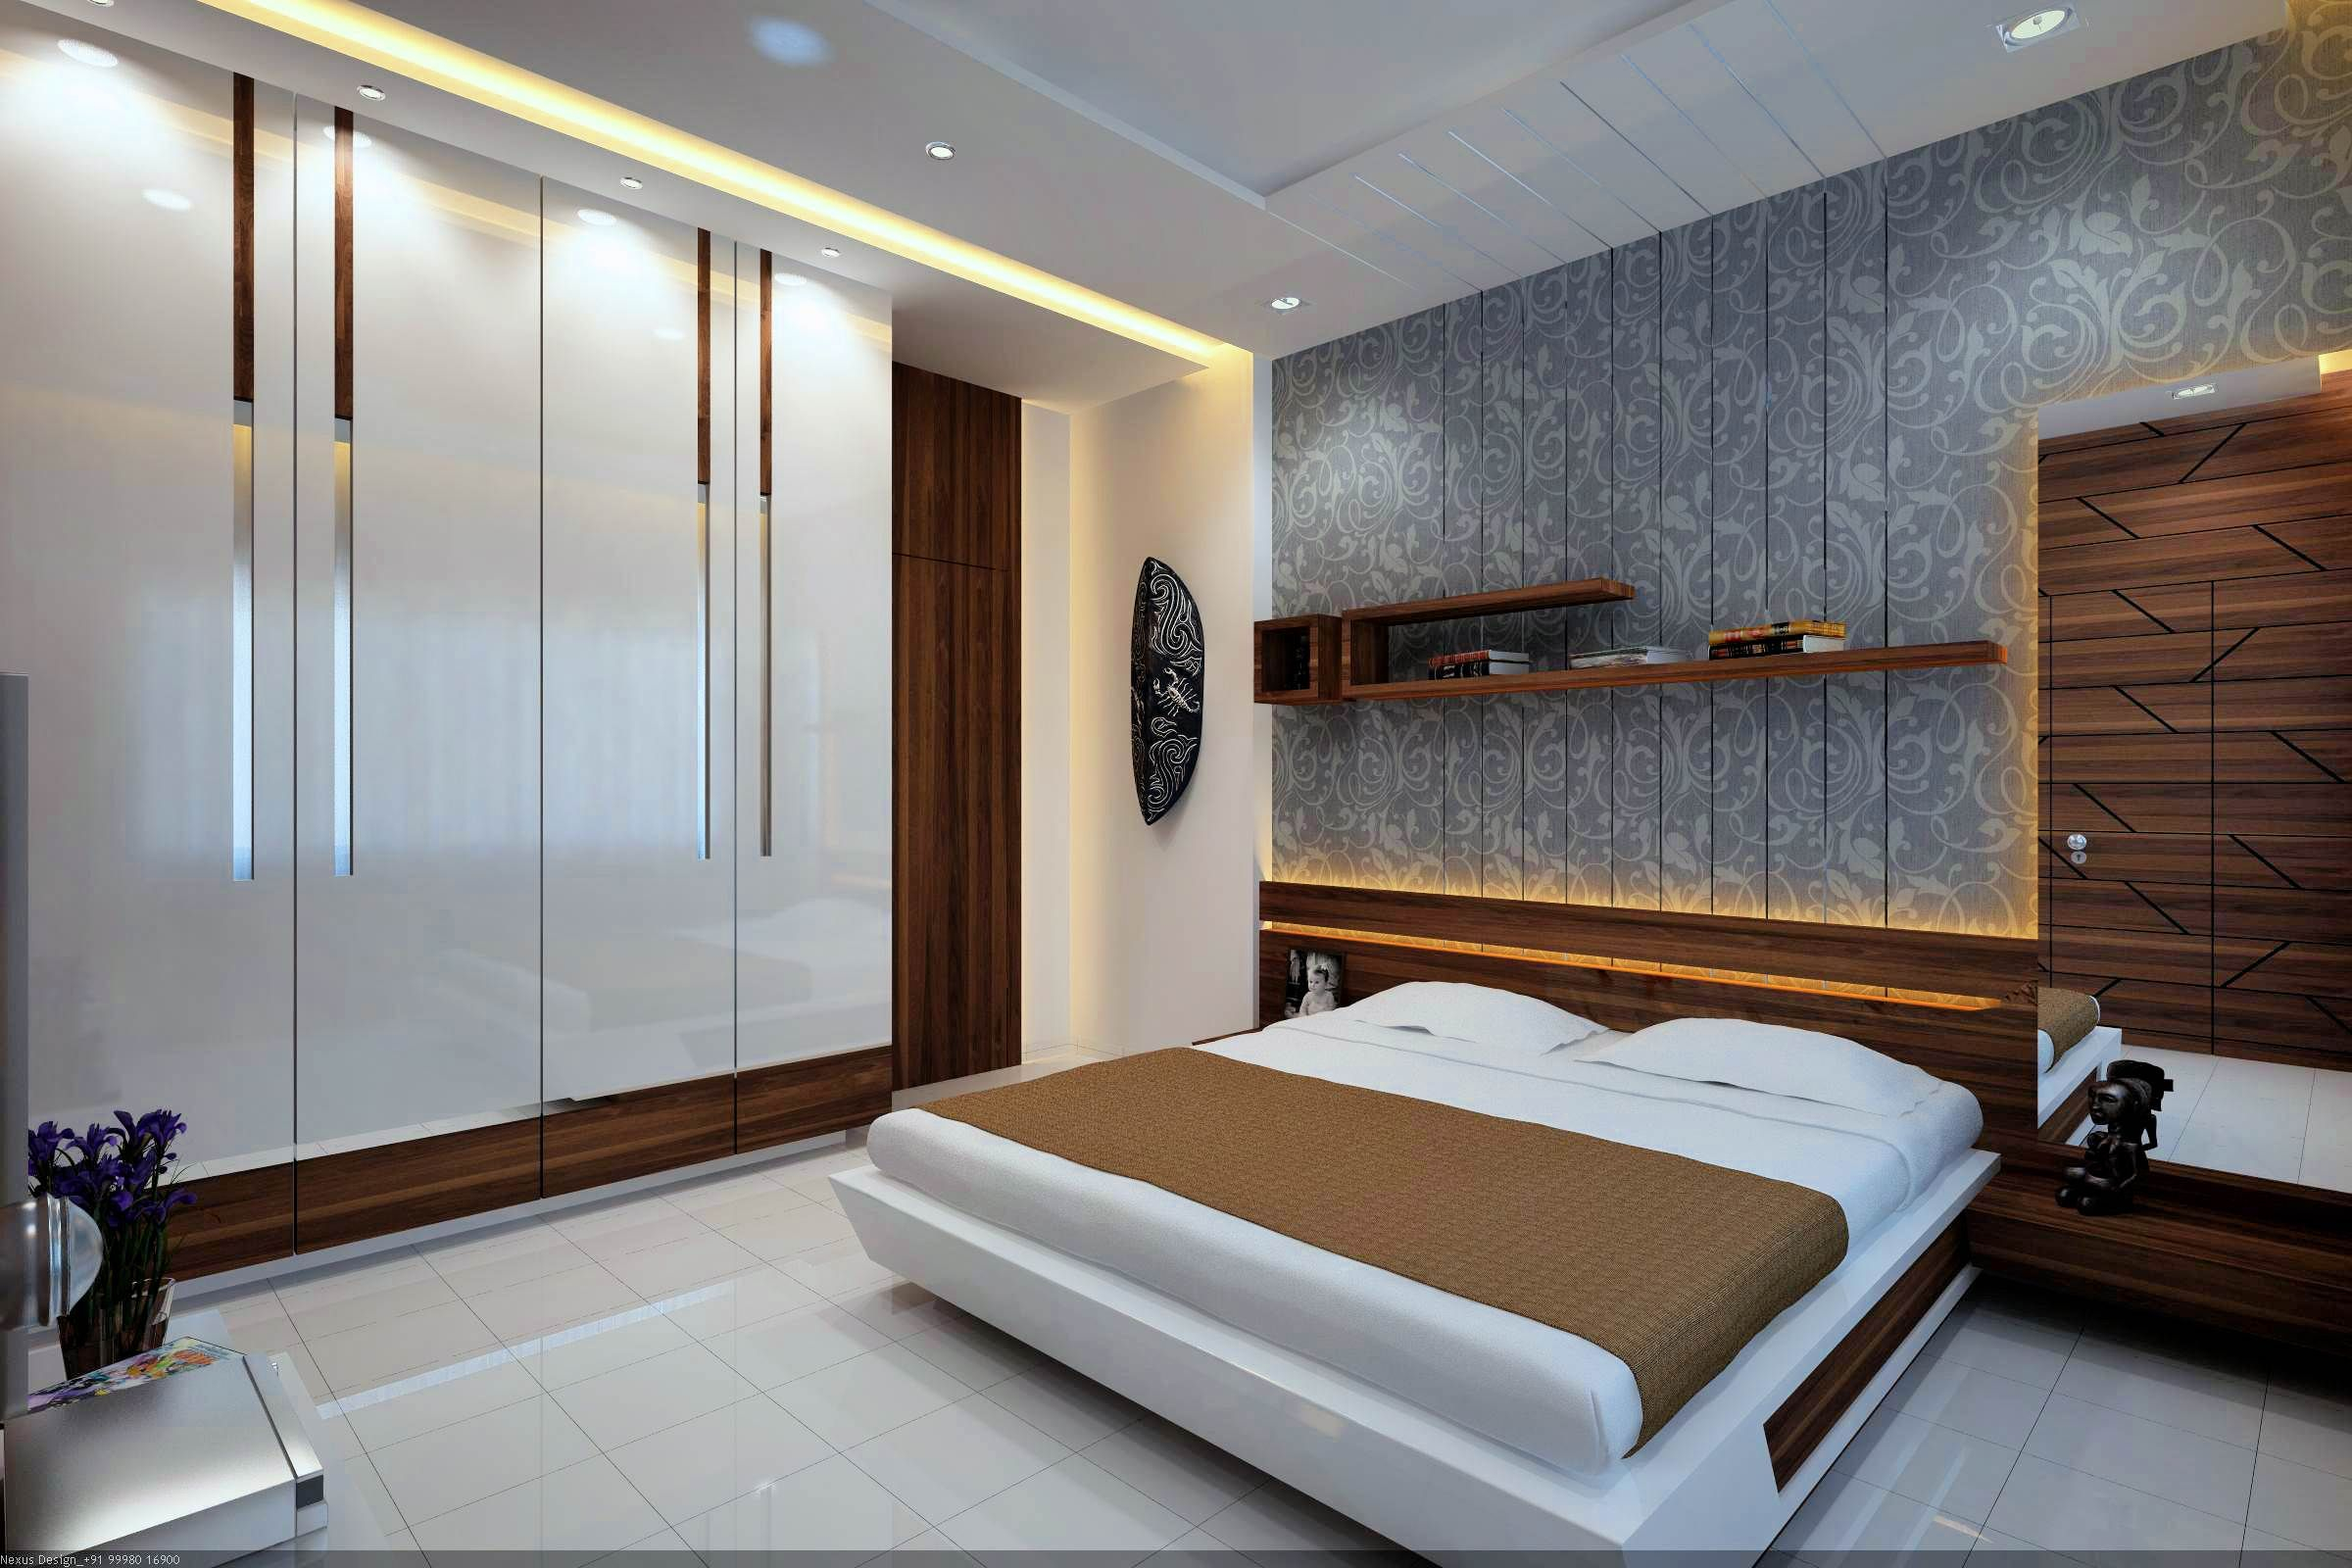 Design Ideas Bedroom Design Ideas Wardrobe Design Bedroom with regard to 10 Smart Ways How to Improve Modern Bedroom Design Ideas